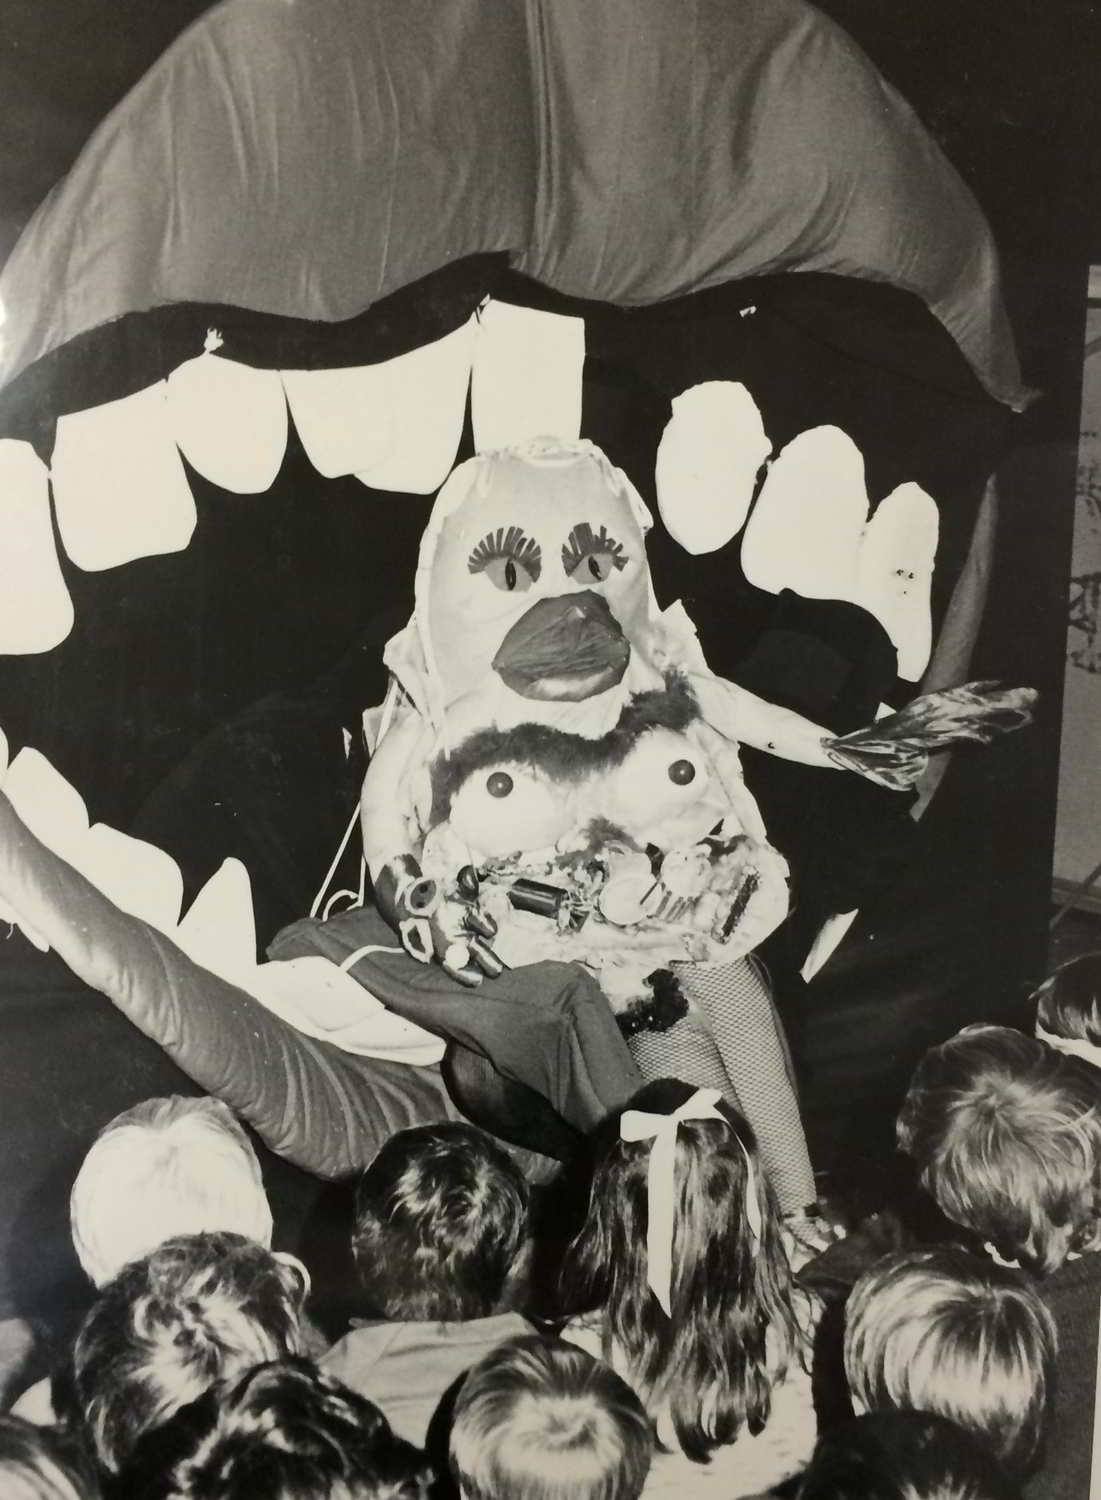 Handspan Theatre The Mouth Show, Sugar, a garish puppet with ice-cream breasts and cherry nipples being rolled into the mouth by its tongue